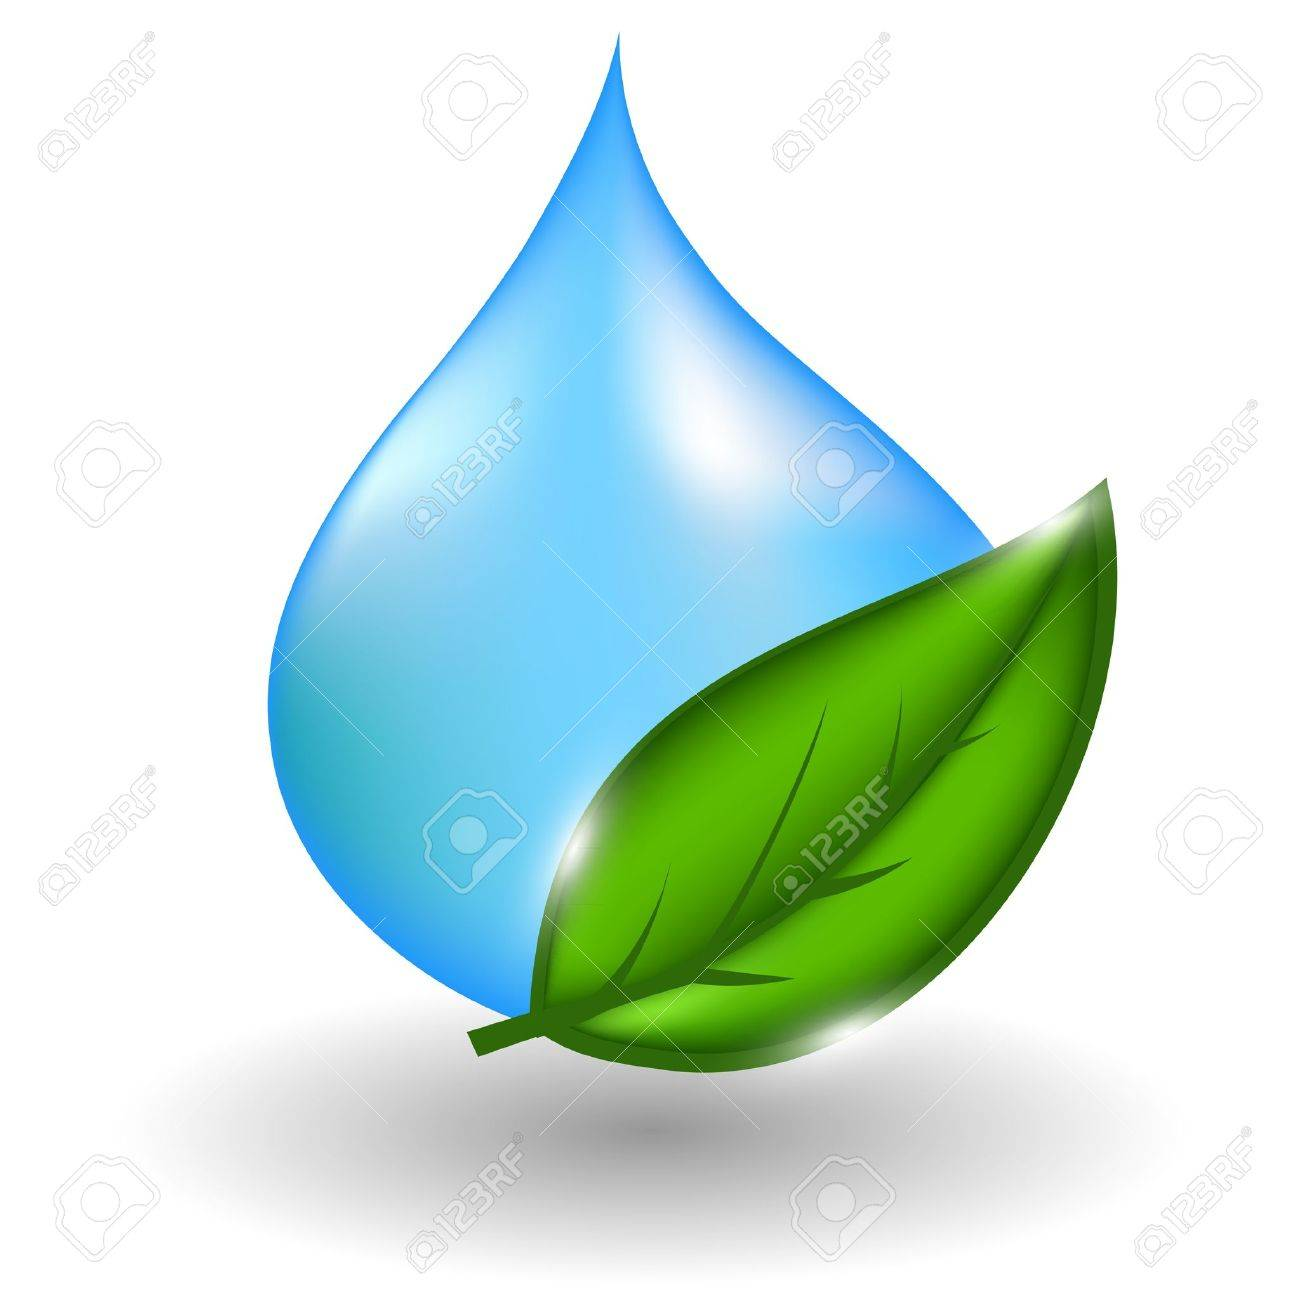 water drop with green leaves.illustration Stock Vector - 13657554